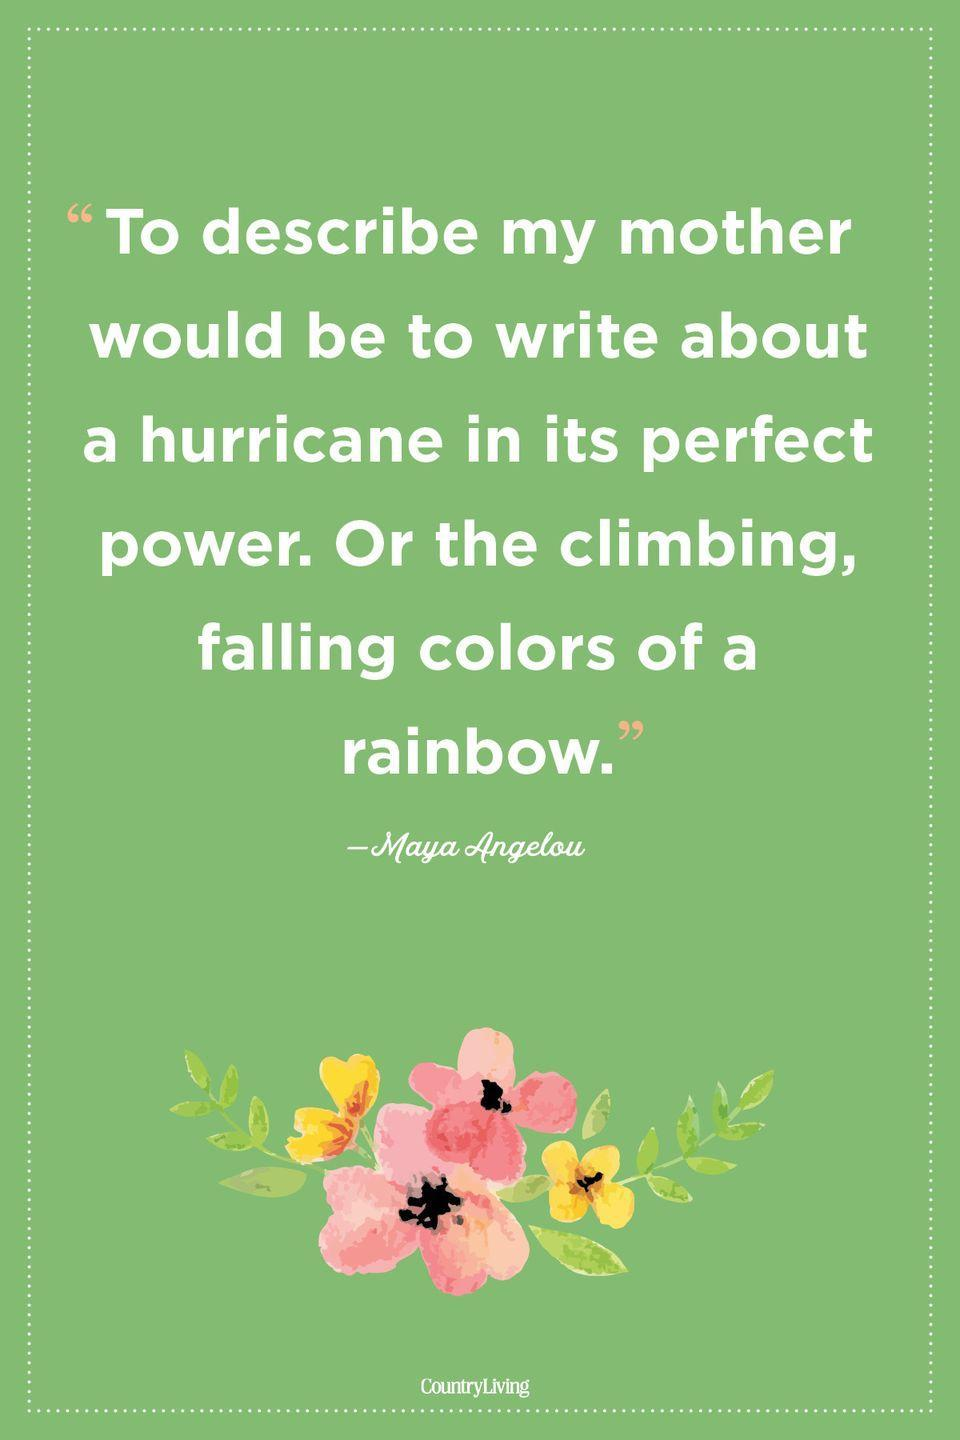 "<p>""To describe my mother would be to write about a hurricane in its perfect power. Or the climbing, falling colors of a rainbow.""</p>"